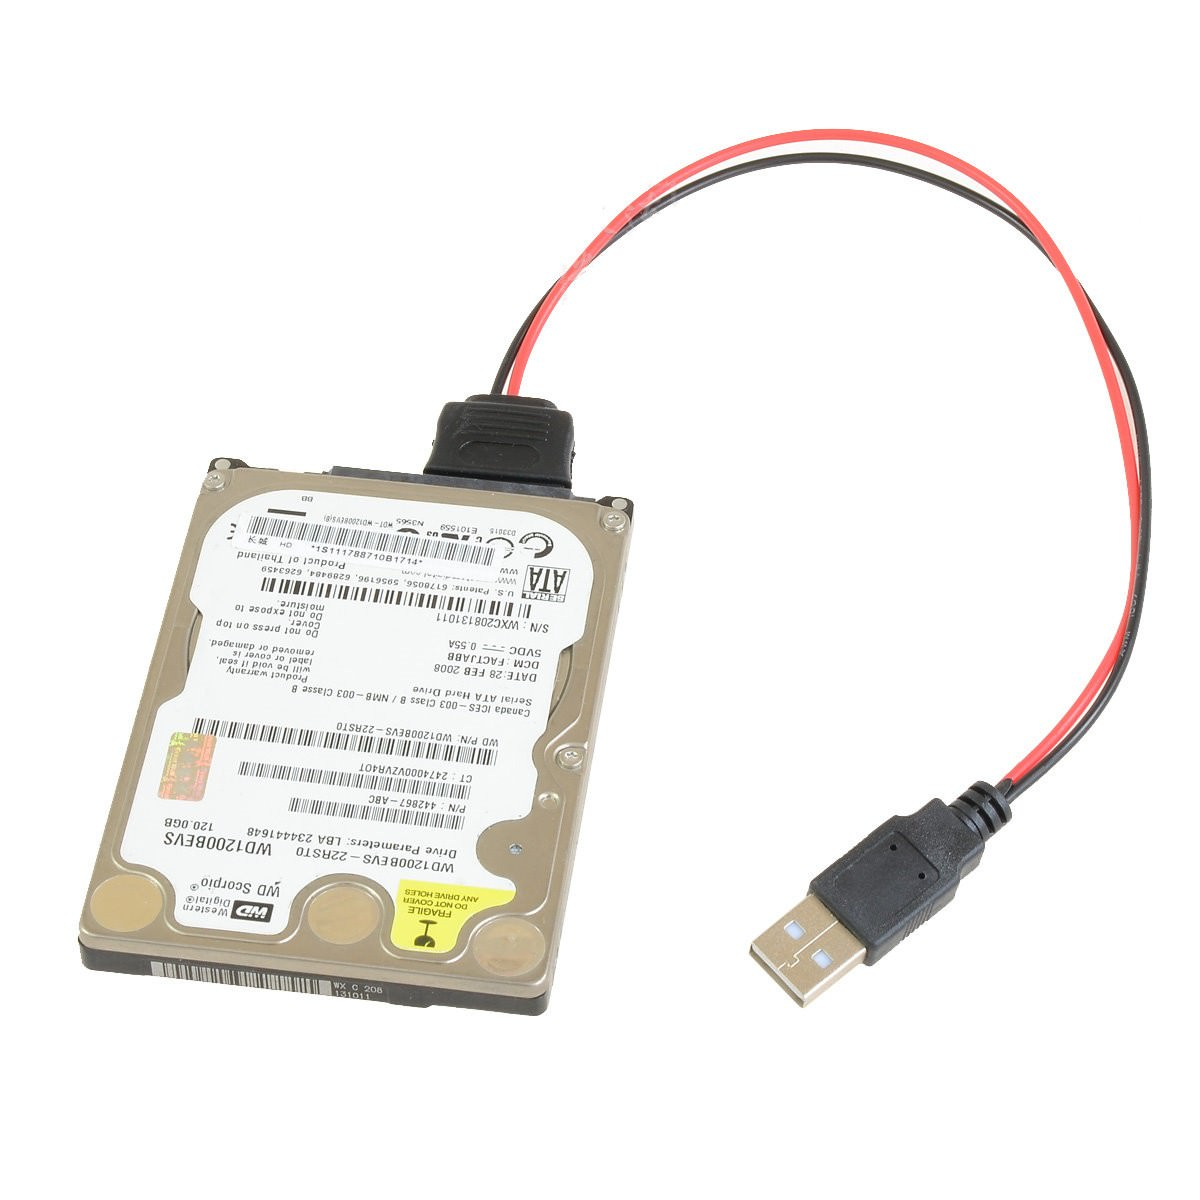 USB_to_2.5_SSD_5 Pin_SATA_Power_Adapter_Cable_%2820cm%29_%281%29__21928_zoom usb to 2 5 ssd 5 pin sata power adapter cable (20cm) moddiy com hard drive power wiring diagram at panicattacktreatment.co